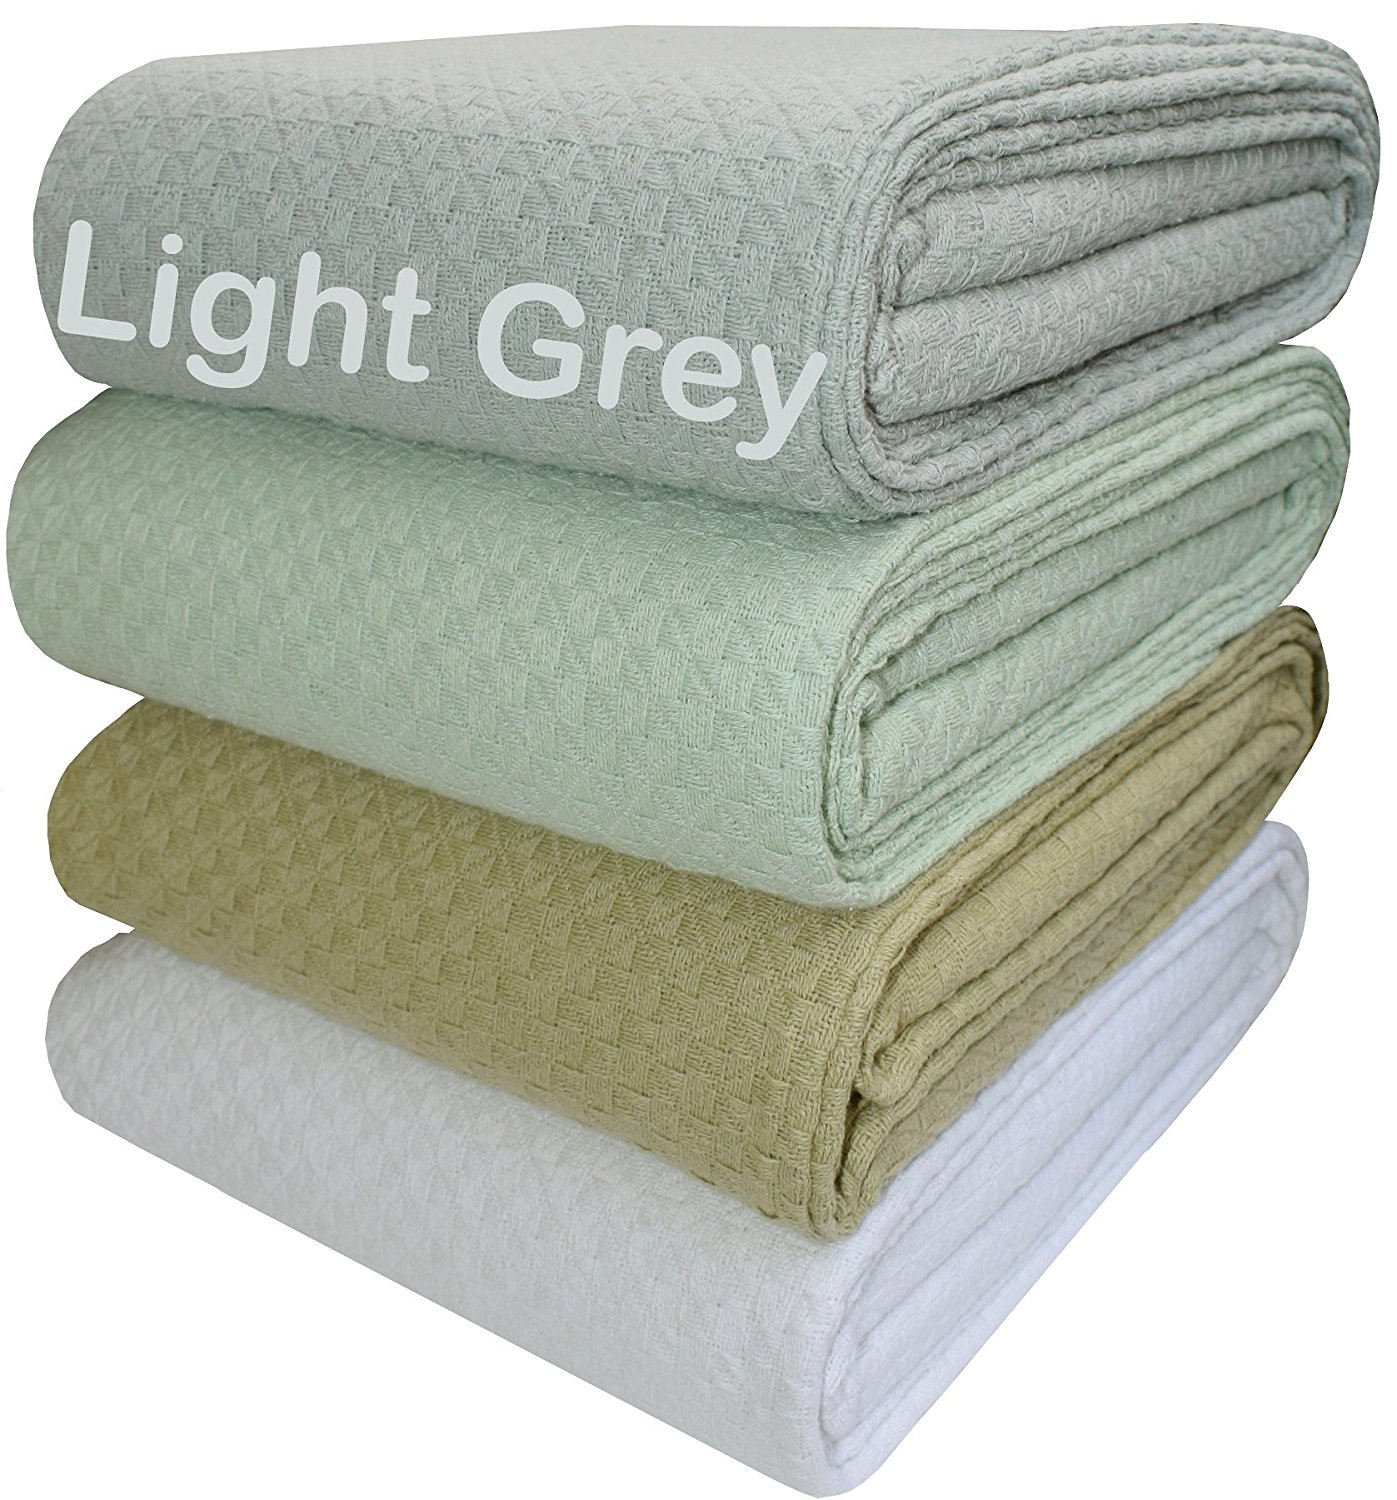 100% Soft Premium Cotton Thermal Blanket - King 102x90 Grey - Snuggle in these Super Soft ,breathable Cozy Cotton Blankets - Perfect for Layering any Bed - Provides Comfort & Warmth for years